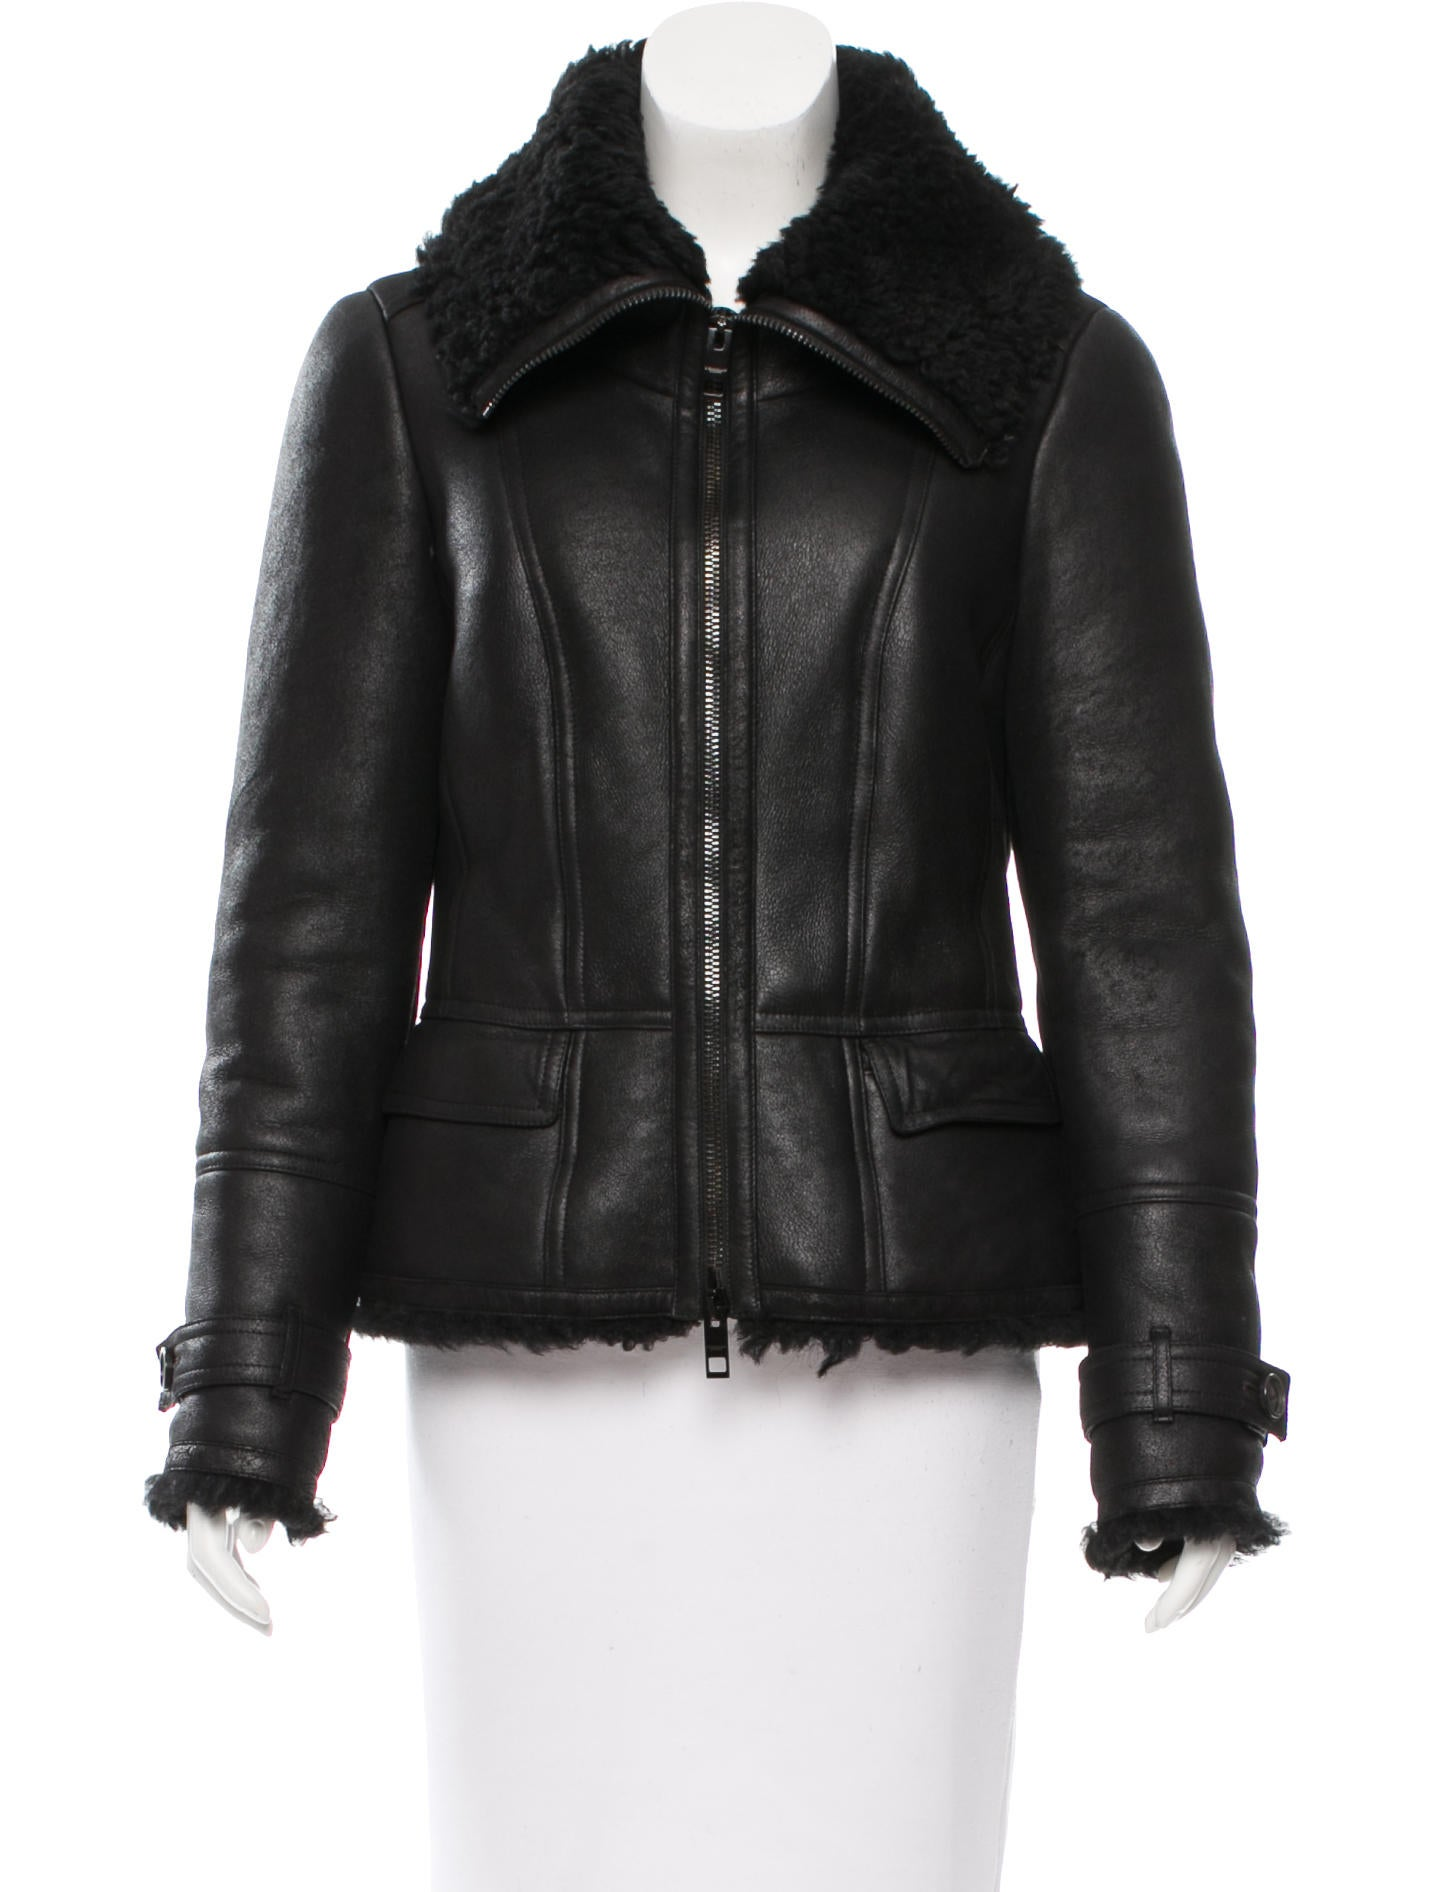 Burberry Shearling Lined Leather Jacket Clothing